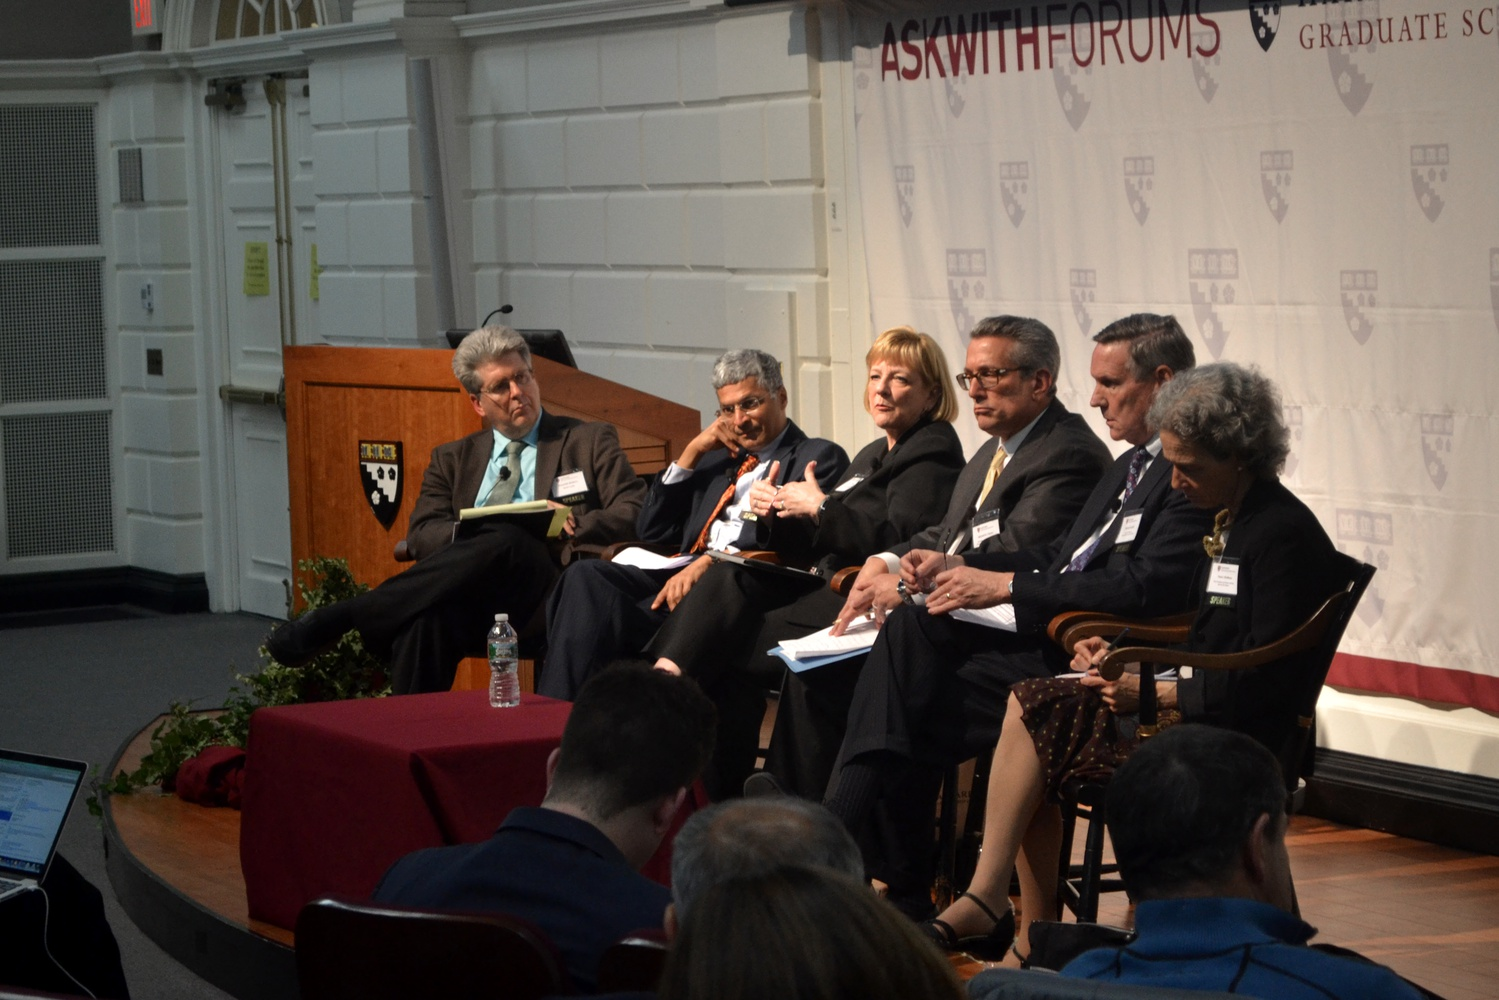 Panelists discuss the current state of K-12 education in a Harvard Graduate School of Education Askwith Forum on Thursday, April 24.